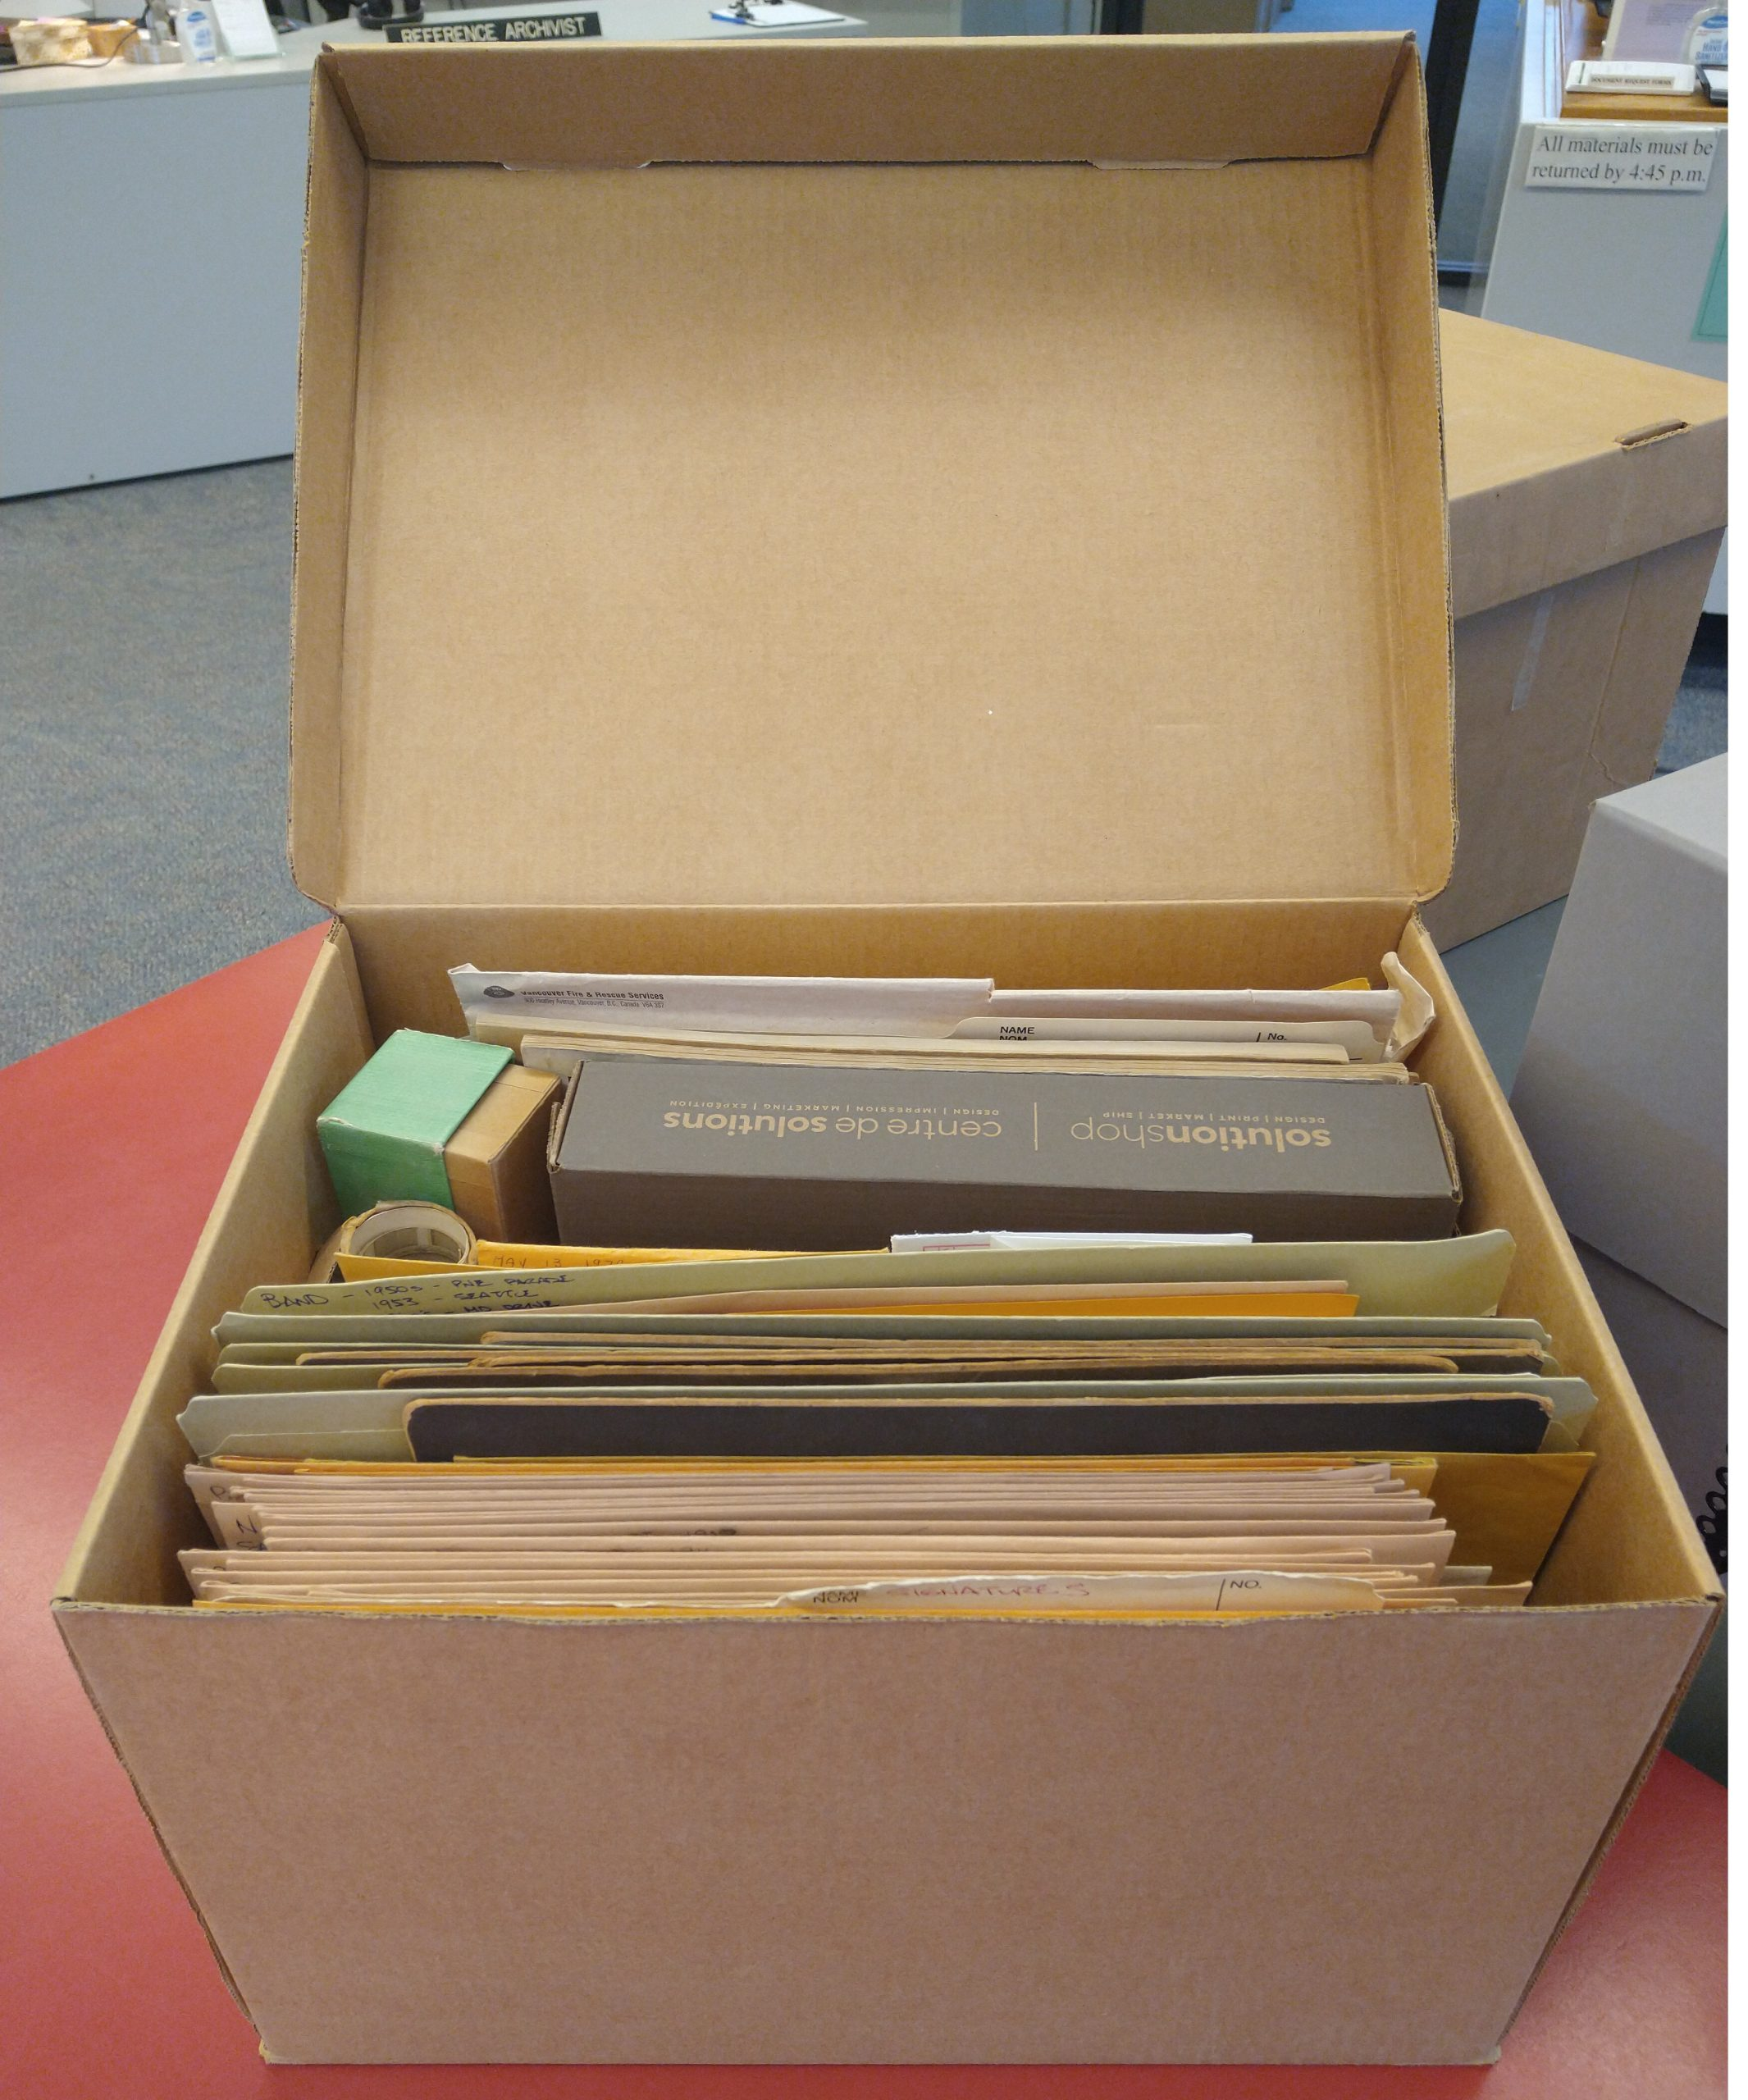 "This box containing about 100+ photographic prints is awaiting further ""TLC"" by an archivist. Photo by Kira Baker"